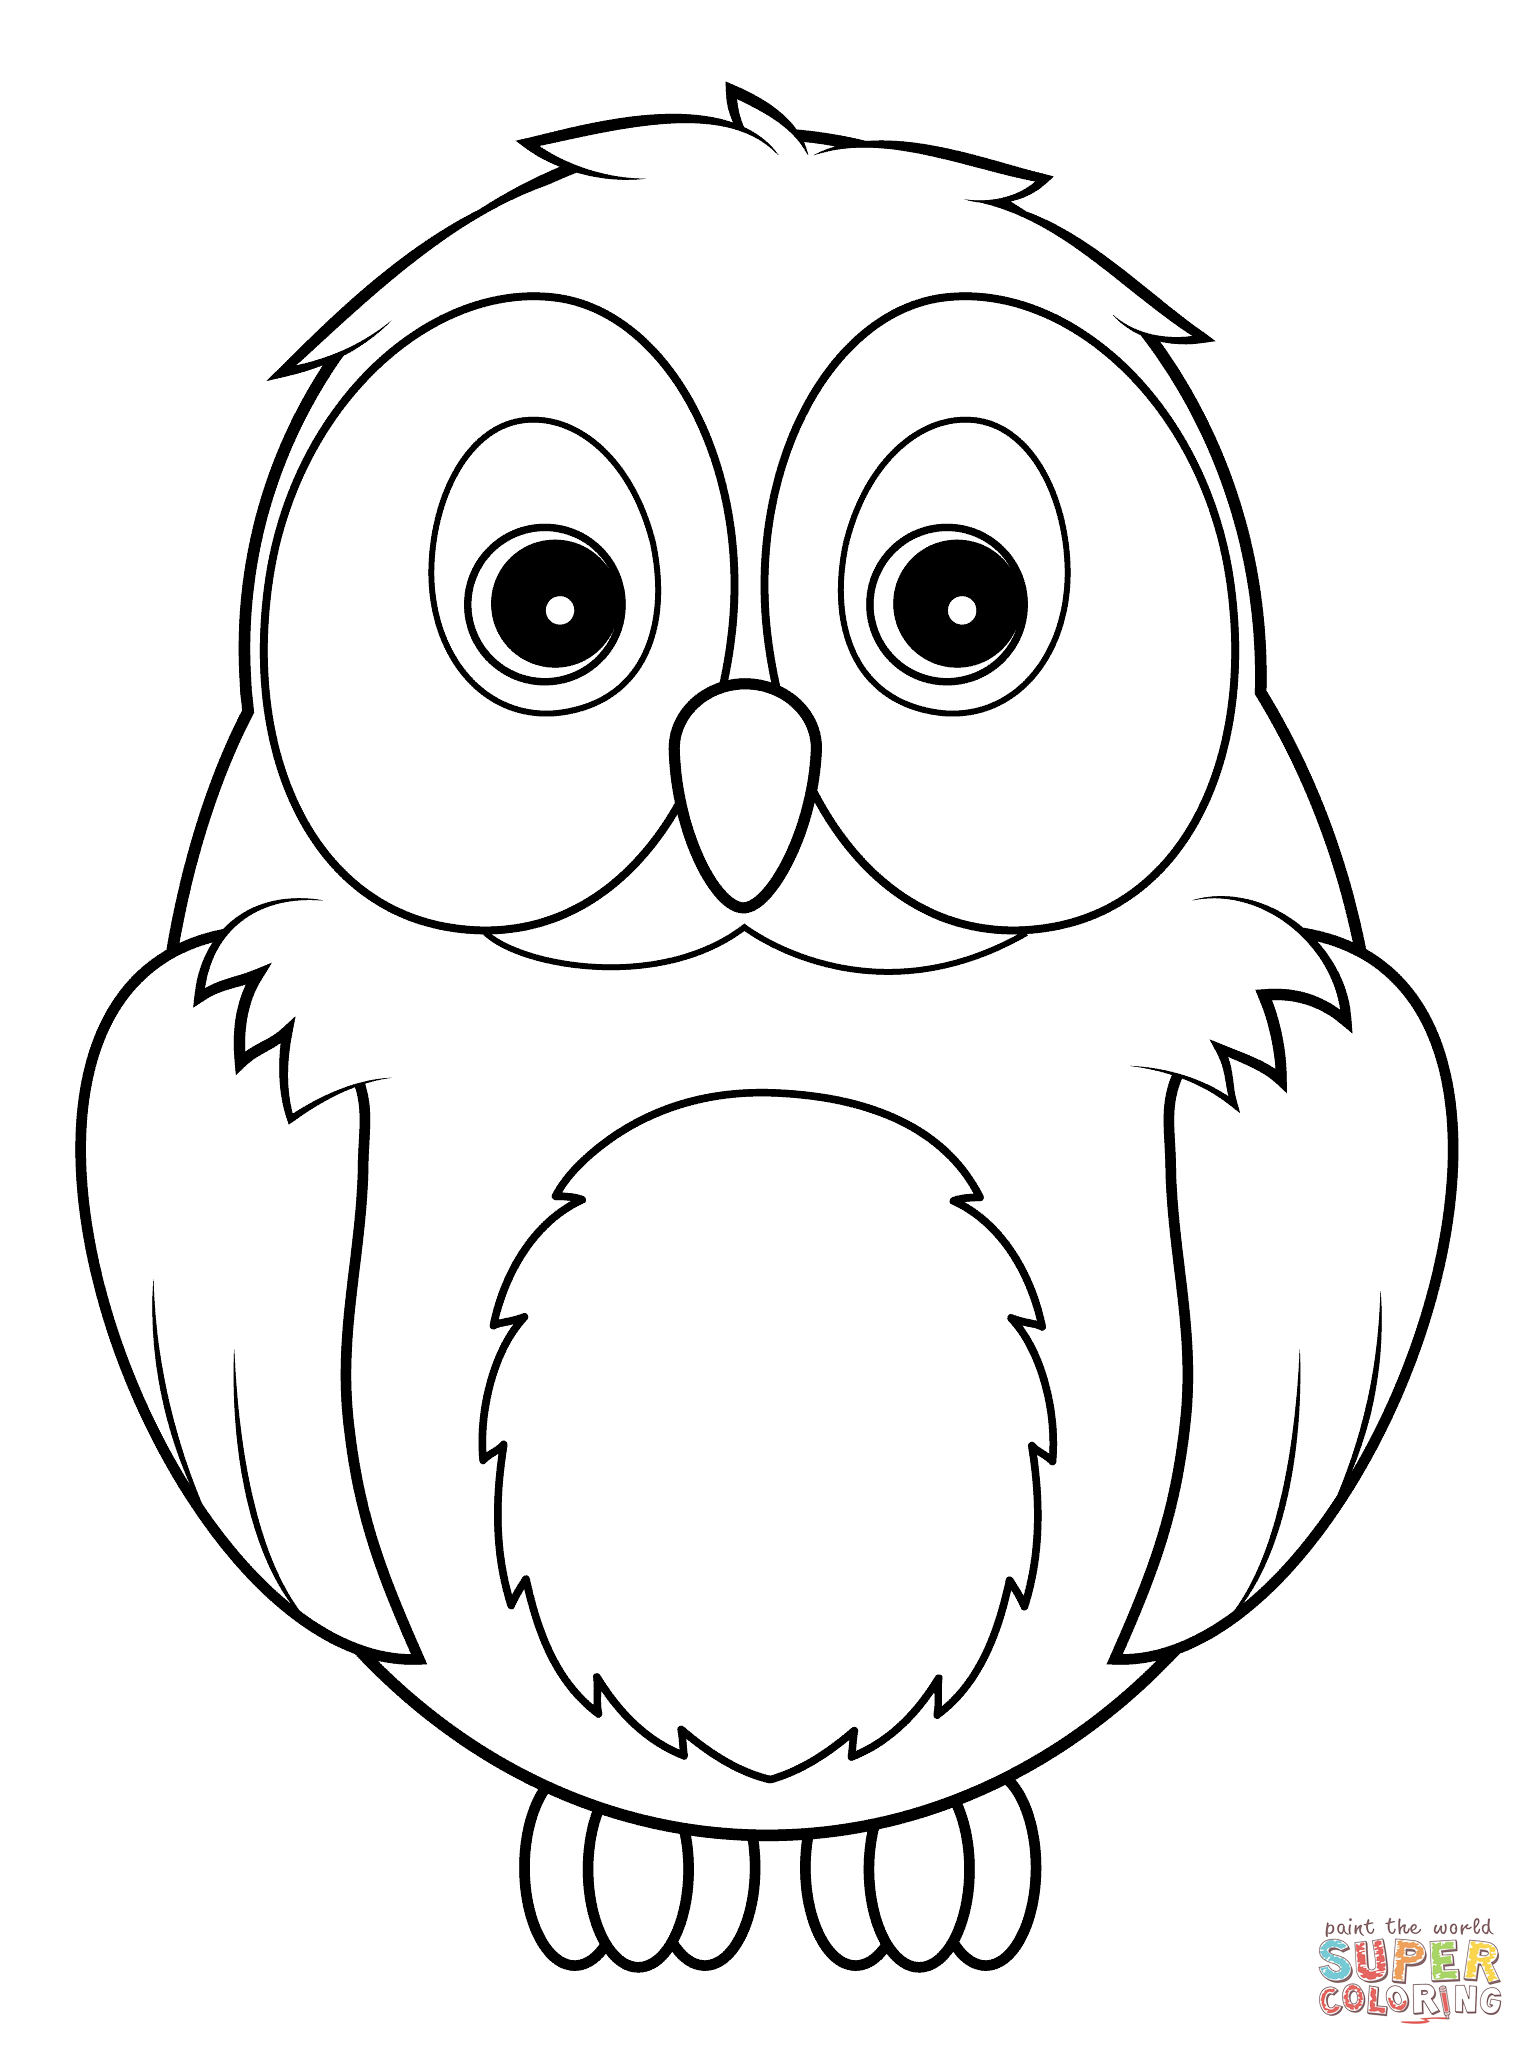 Cute Owl Coloring Page Free Printable Coloring Pages Owl Coloring Pages Owls Drawing Animal Coloring Pages